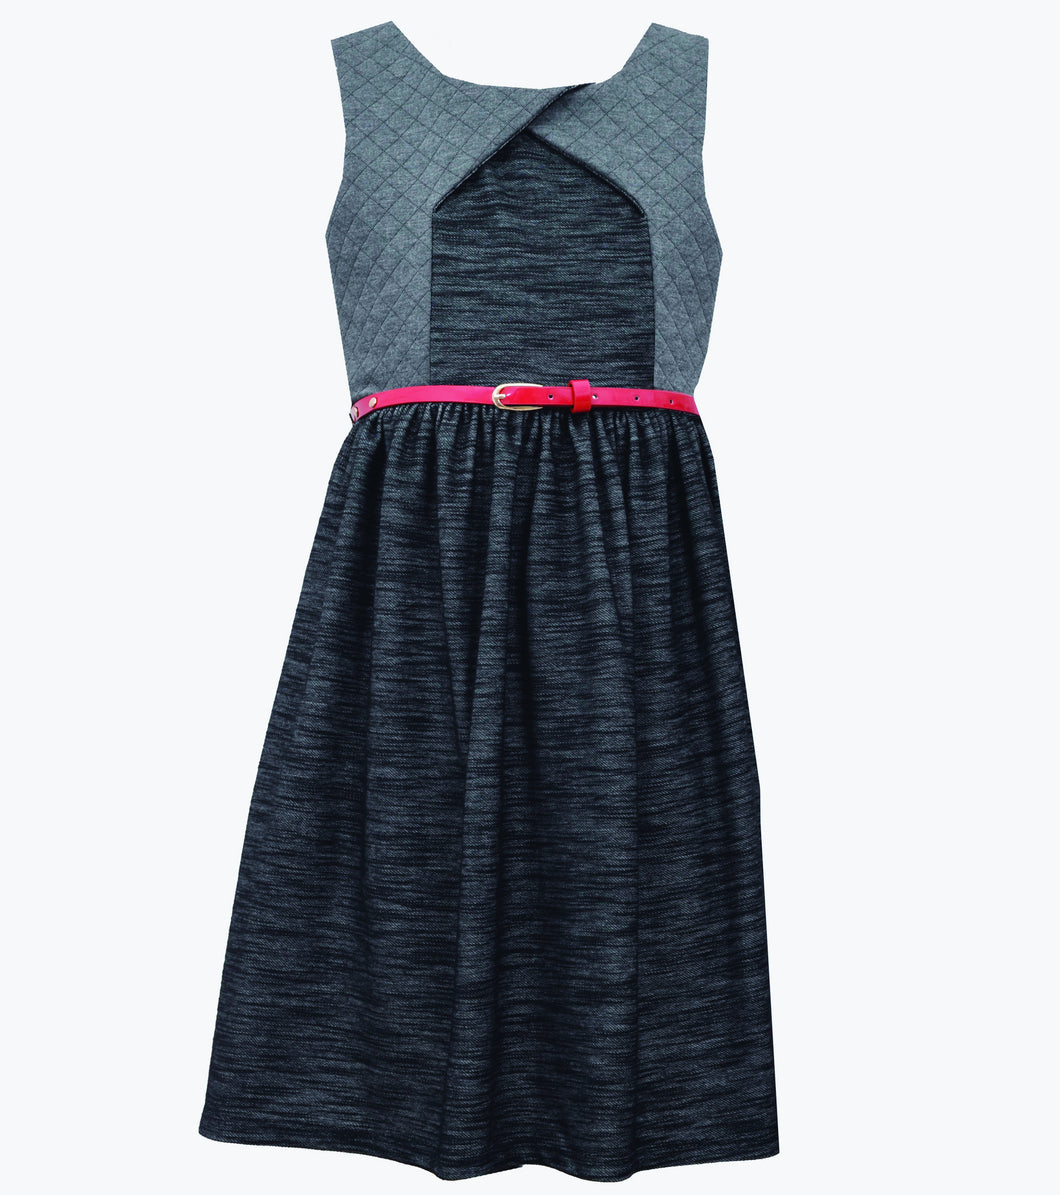 Bonnie Jean quilted chambray dress